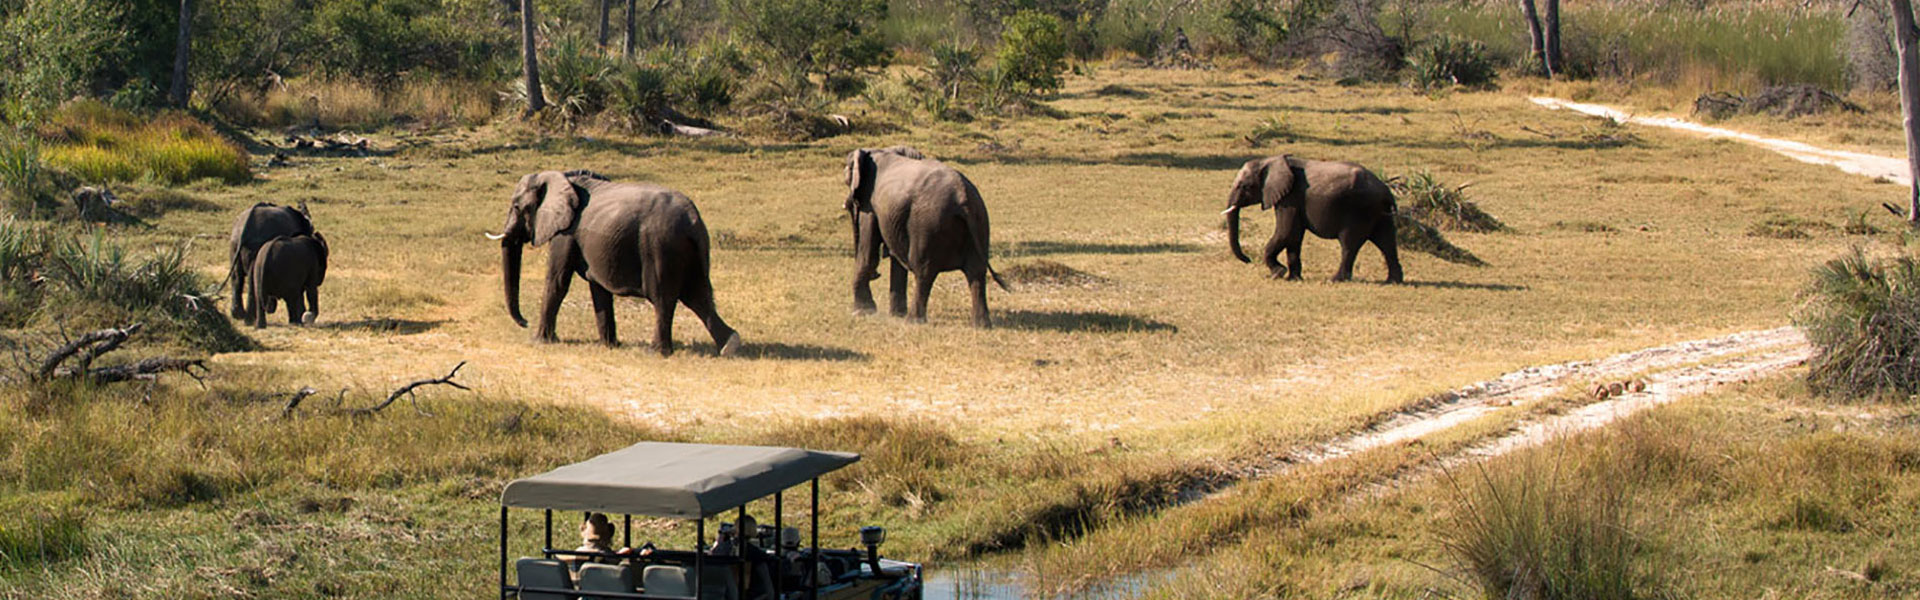 9 Days Tanzania Adventure Luxury Safari